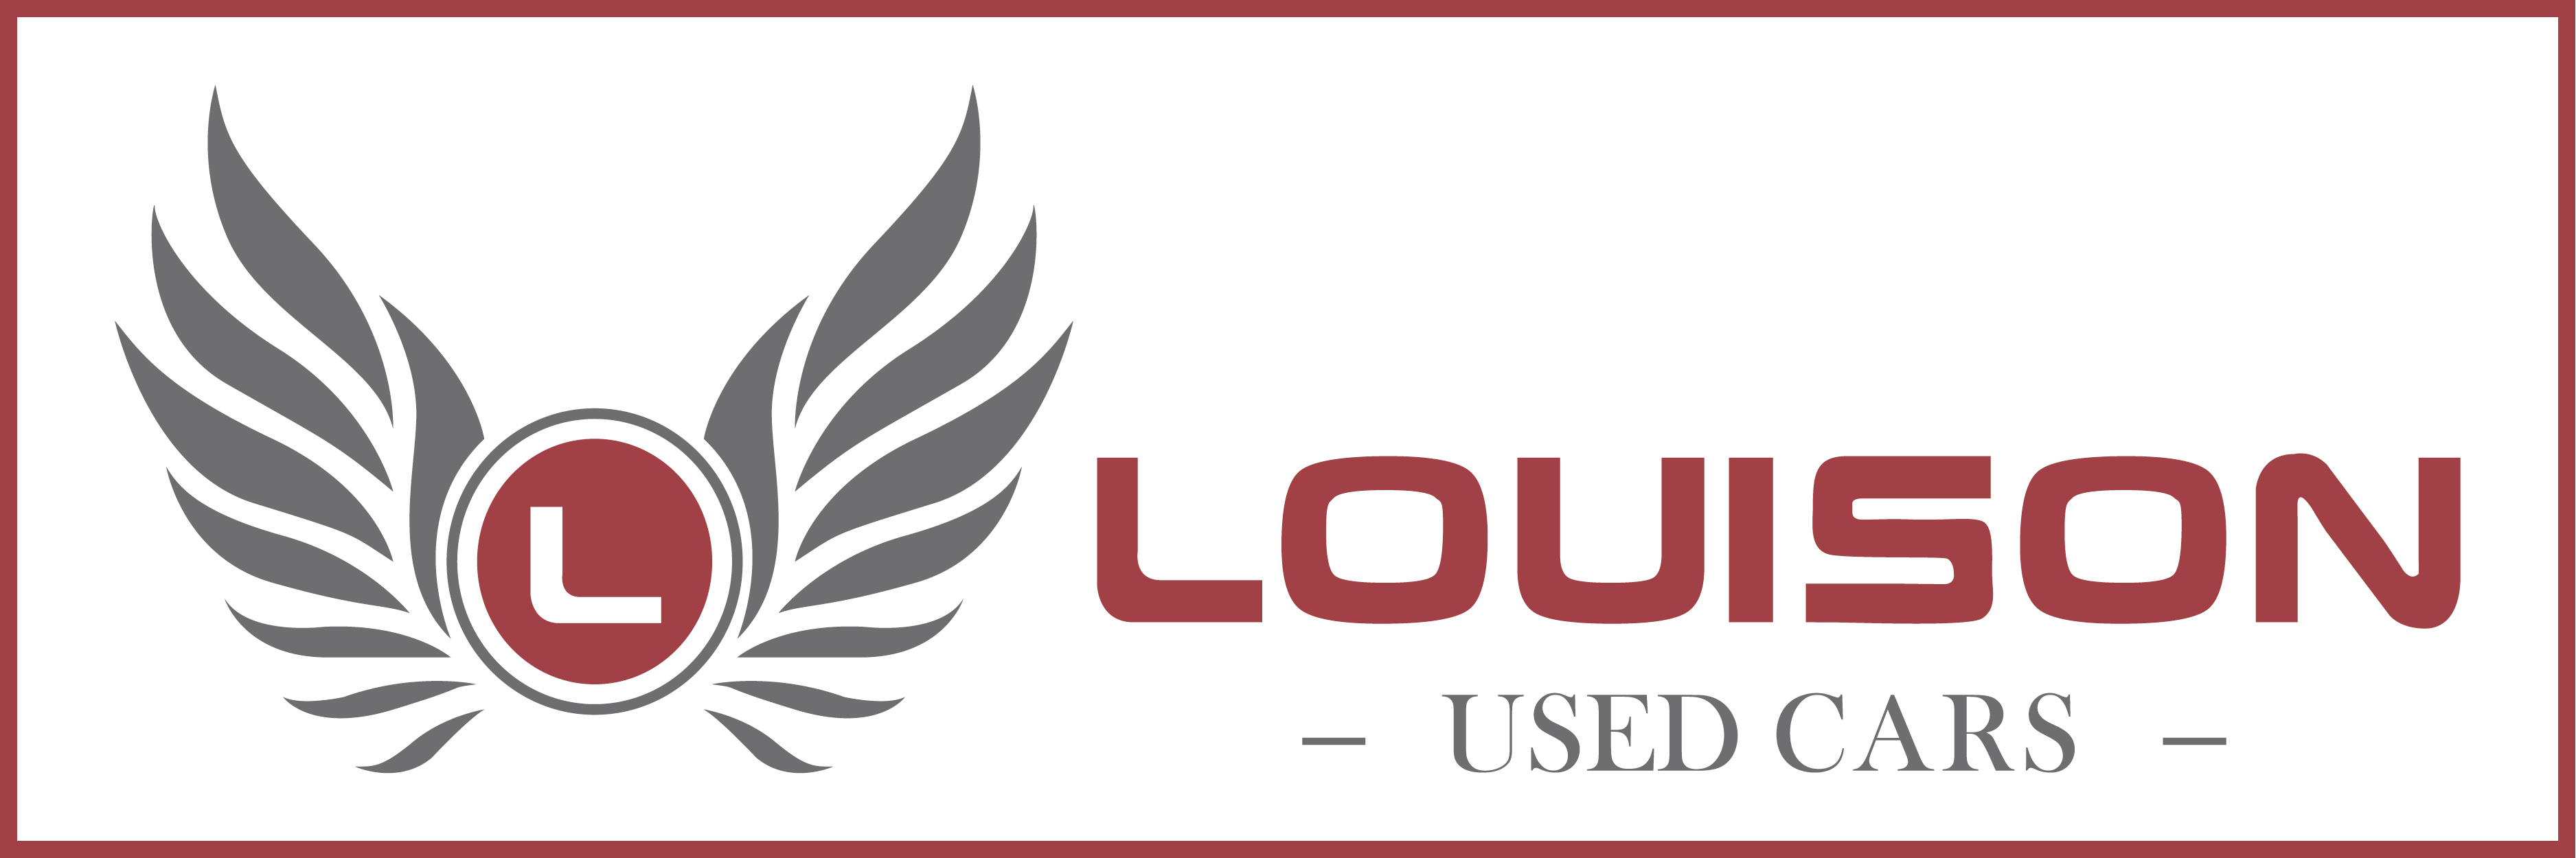 Louison Used Cars